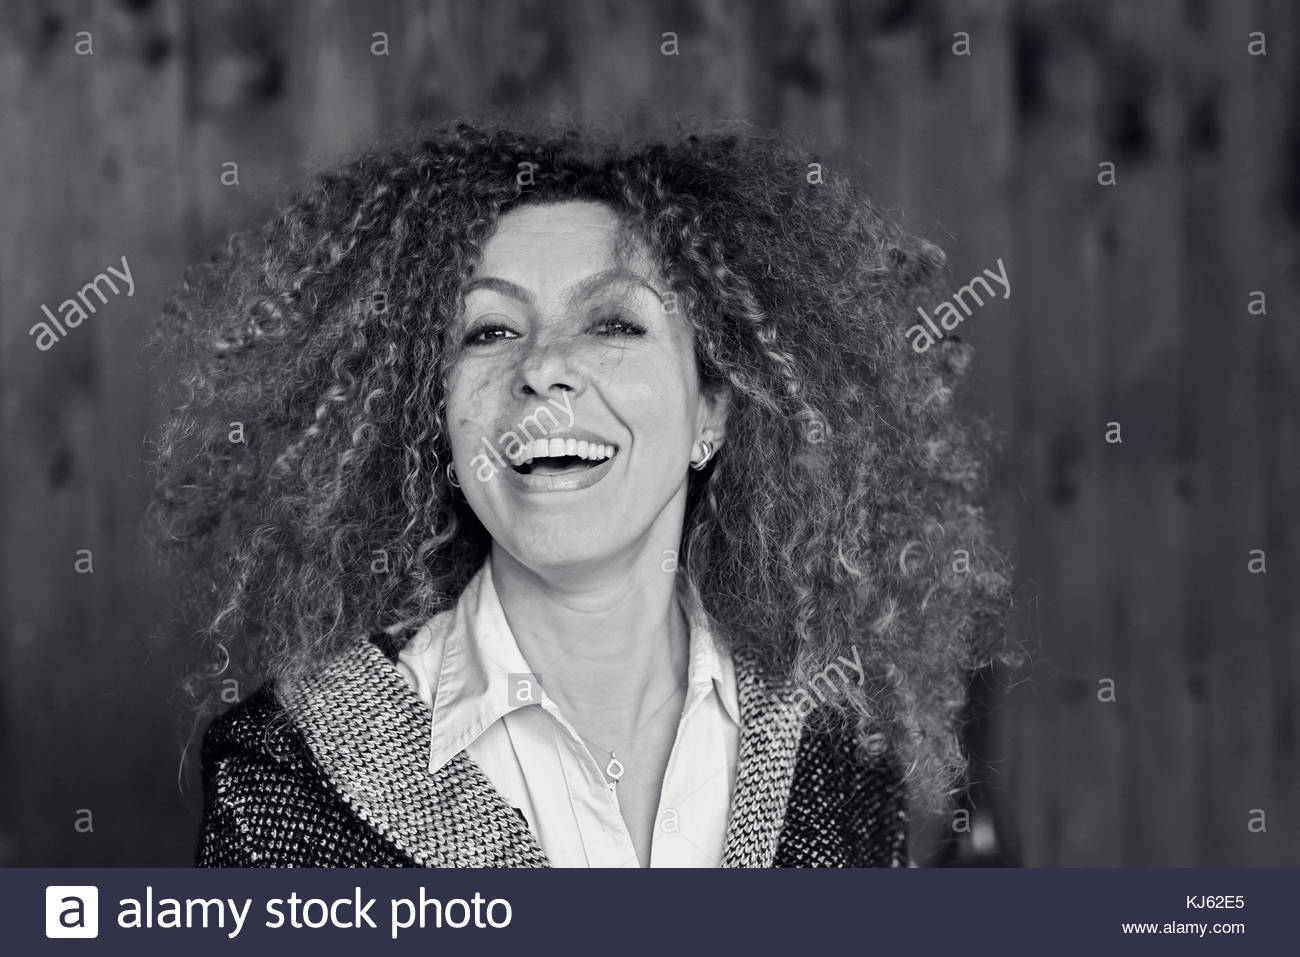 Curly haired middle aged woman enjoyment of life - Stock Image